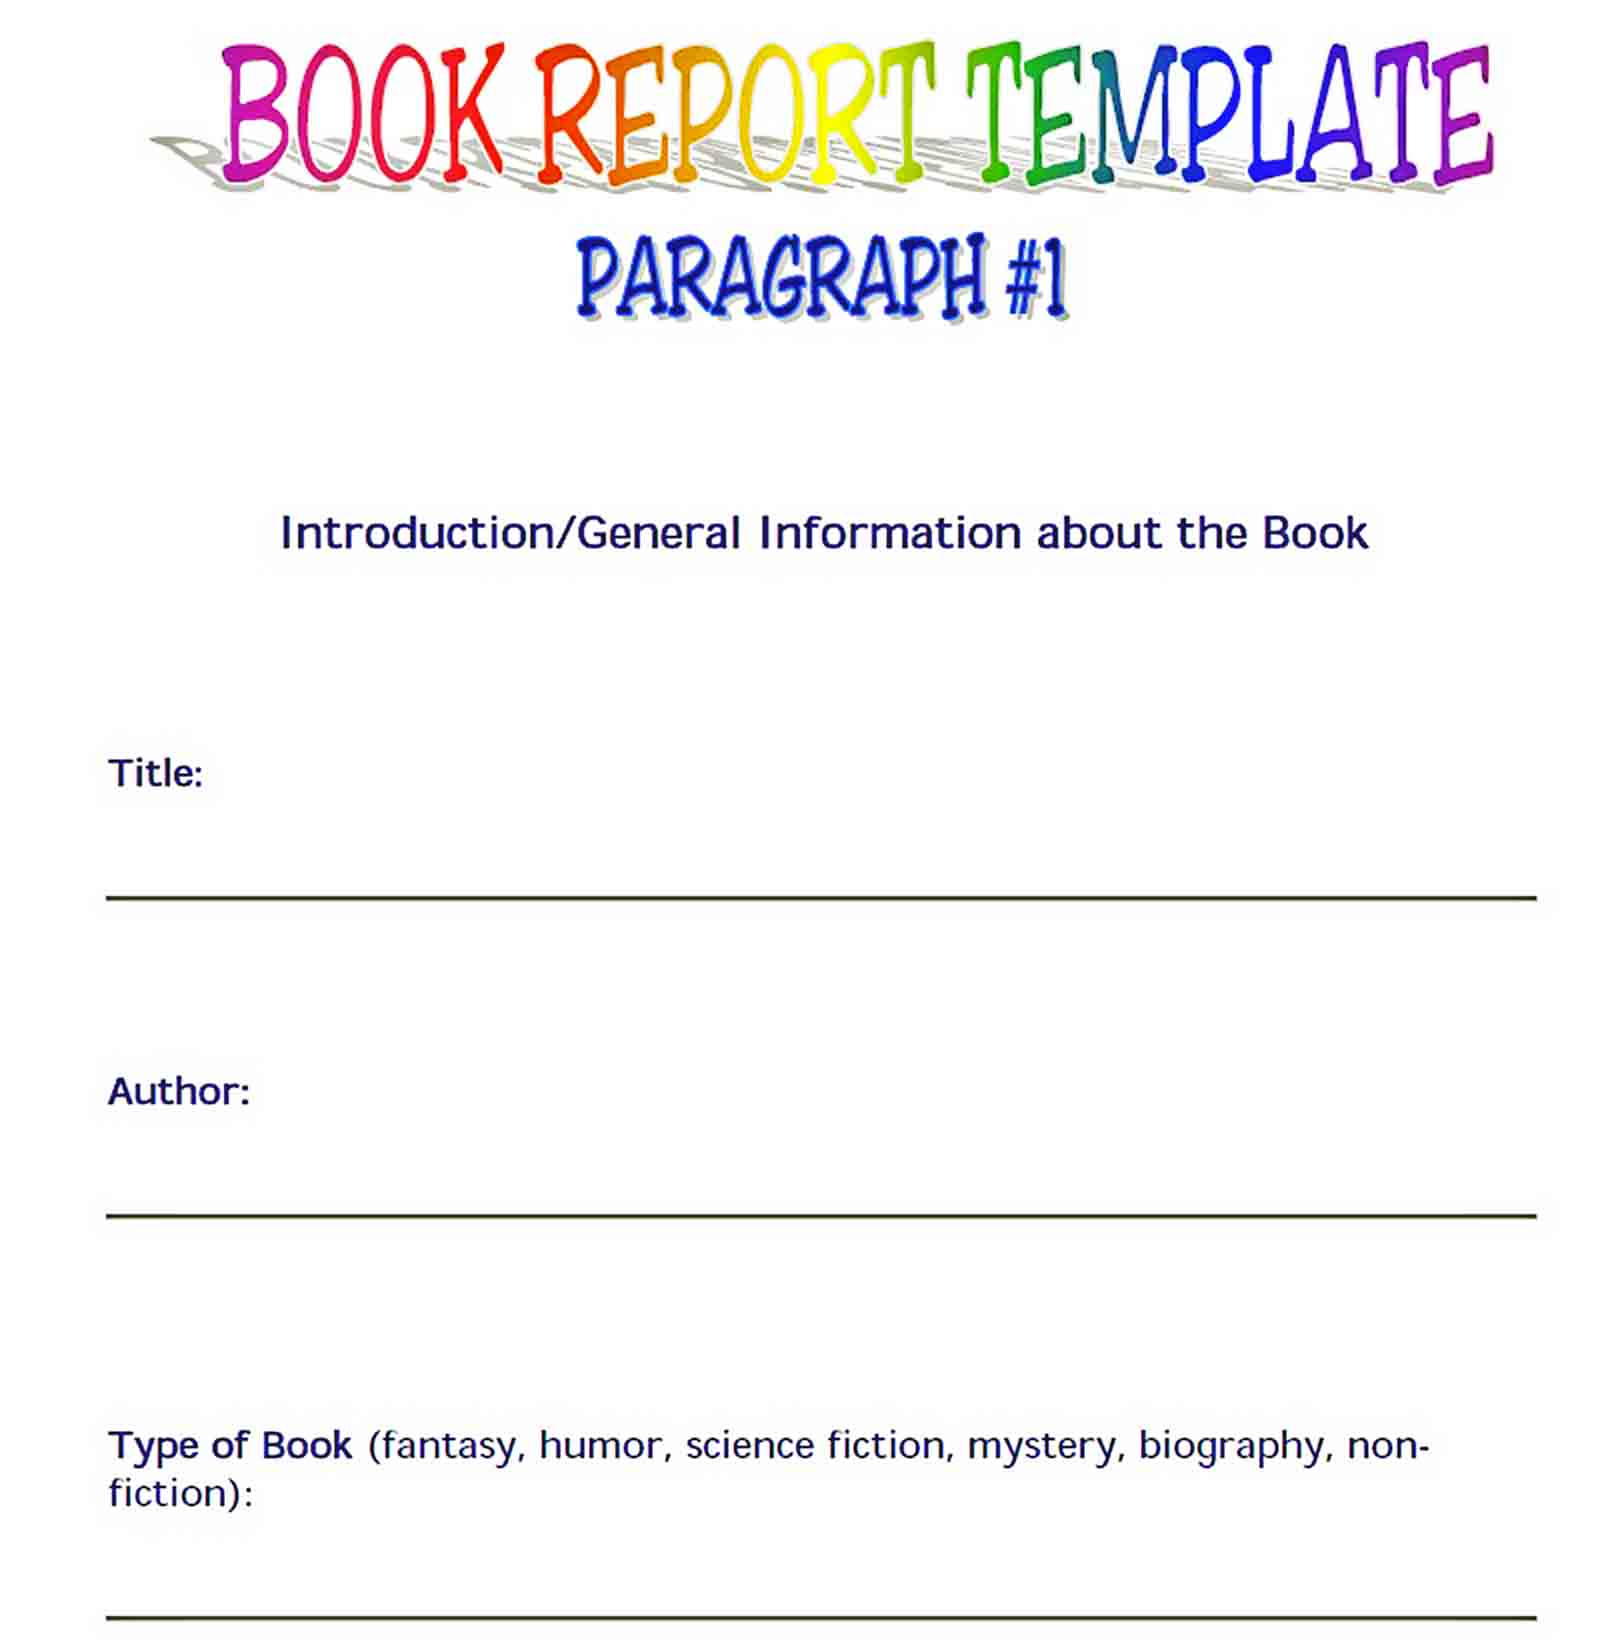 Templates Book Report Format